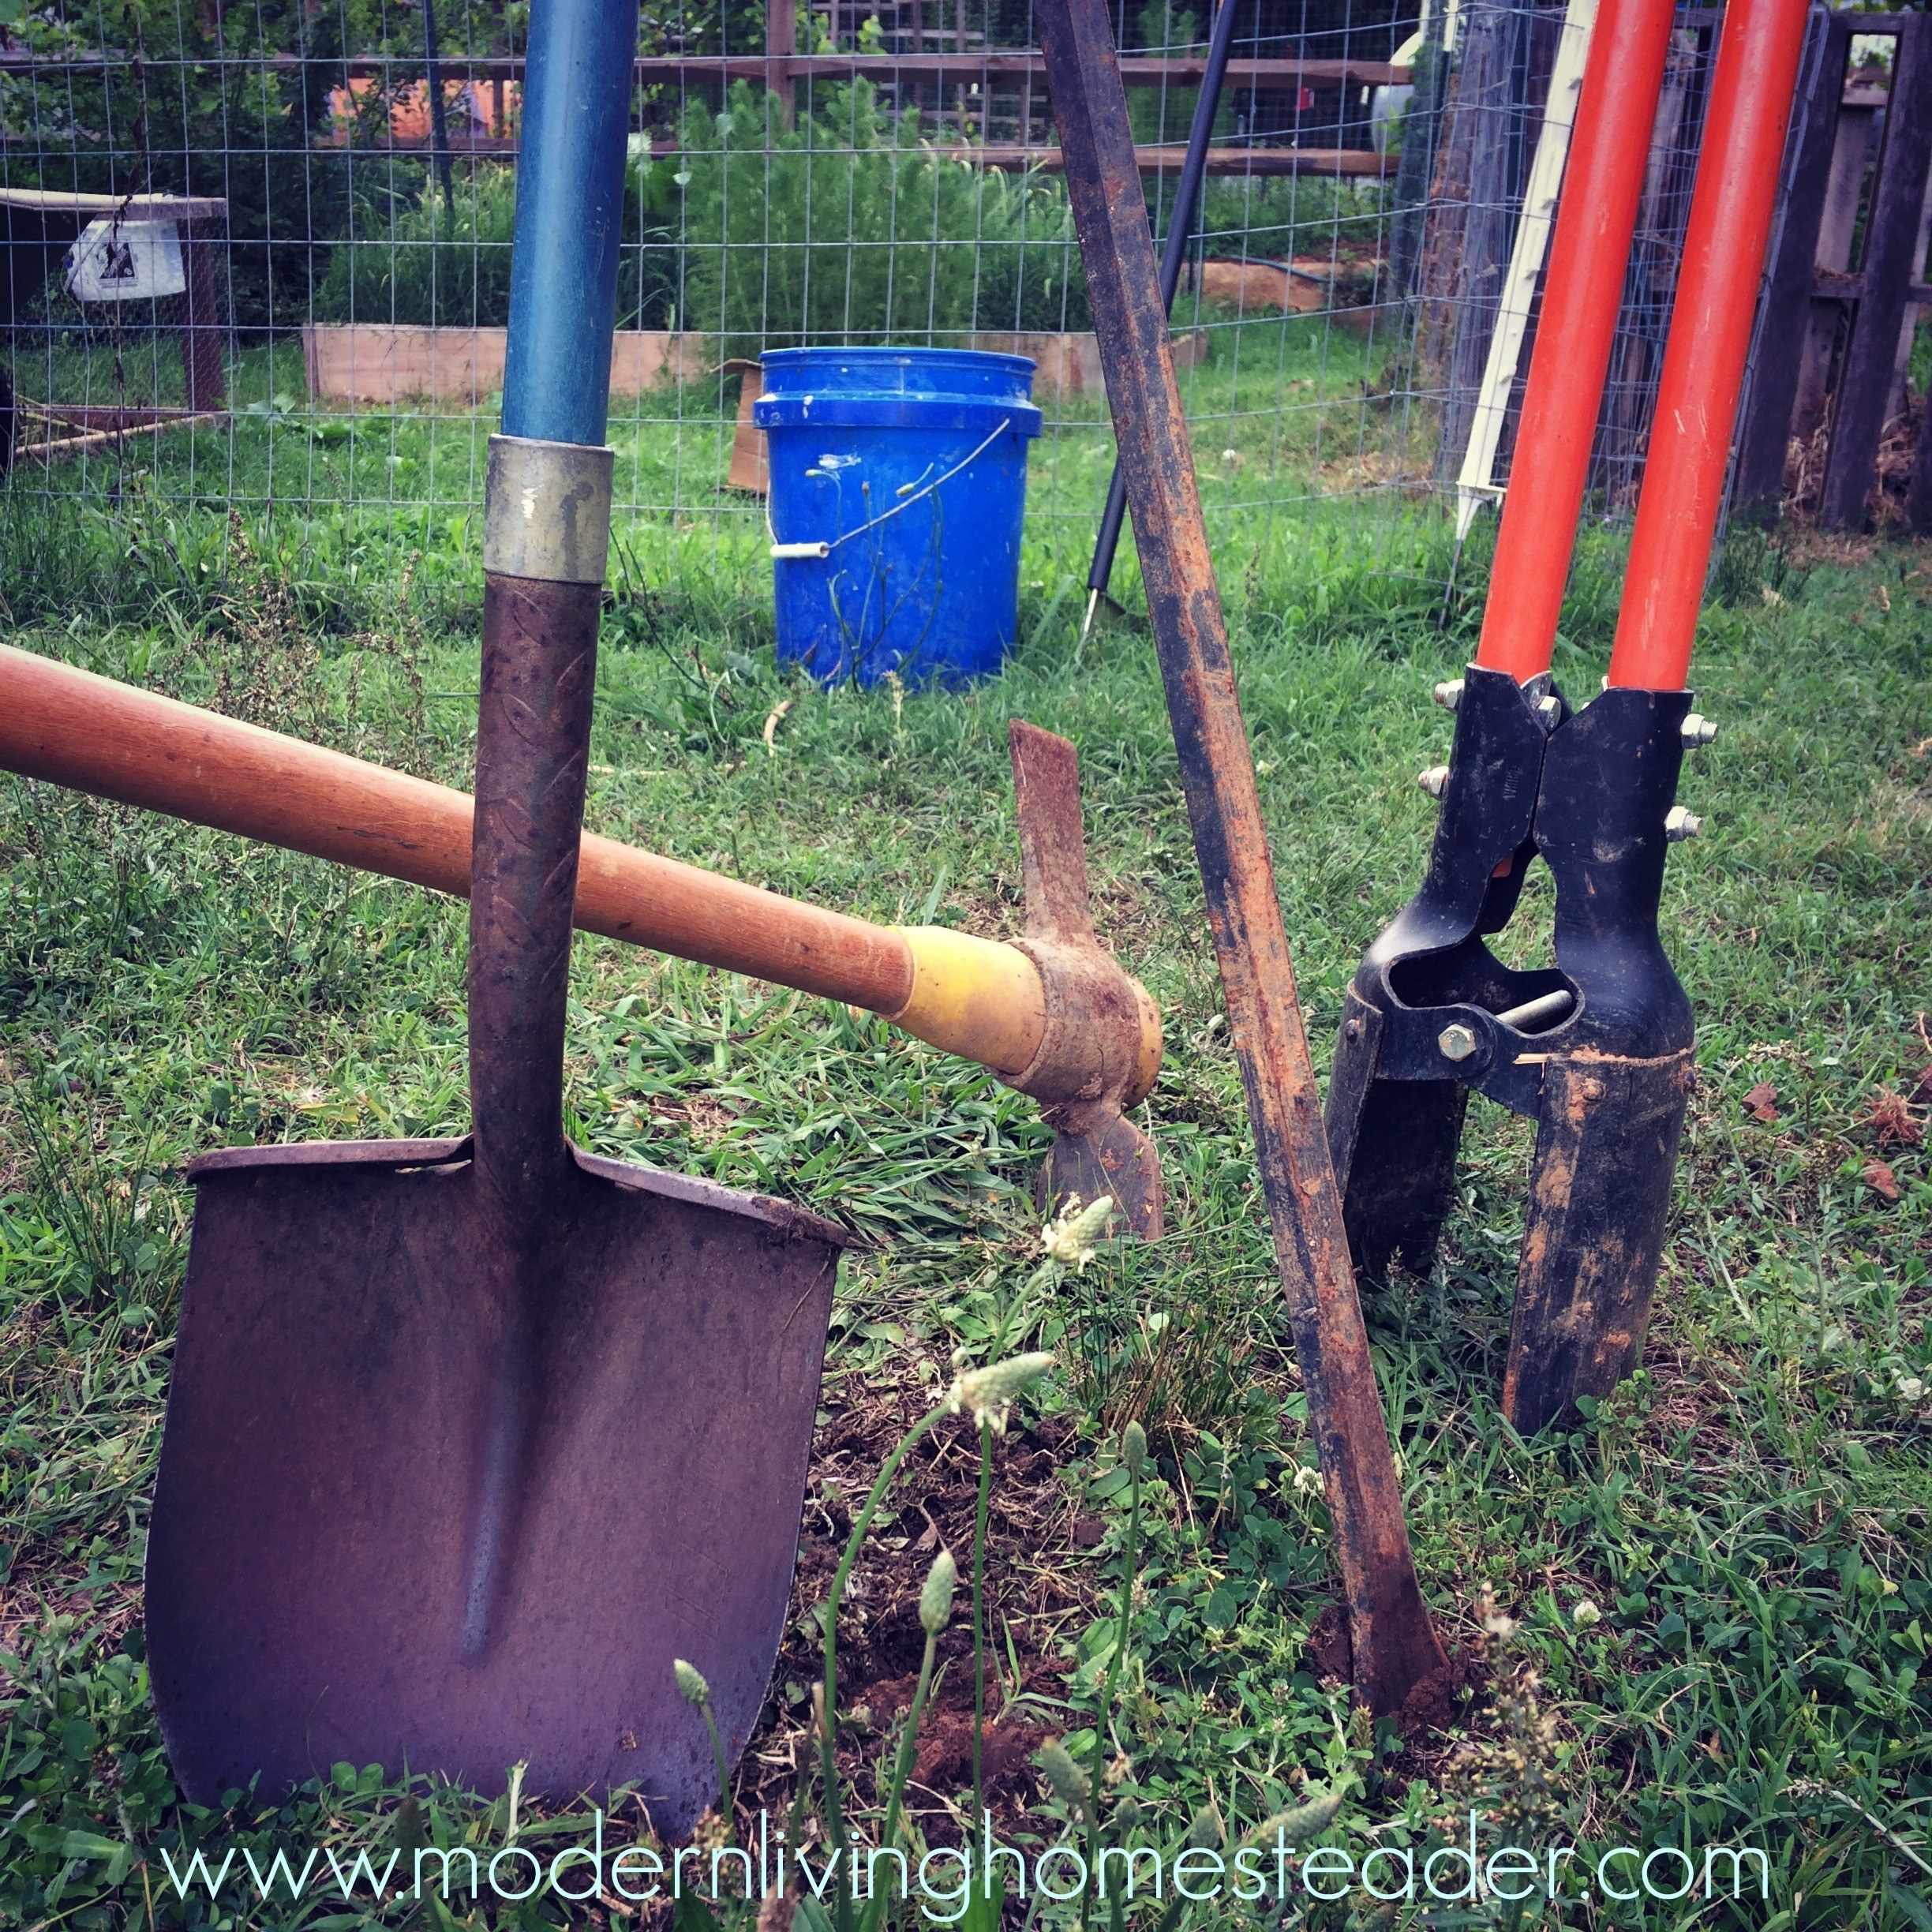 Learn about our favorite tools and products that we use all the time on our homestead. Compare with your own favorites, generate ideas, or buy a gift. www.modernlivinghomesteader.com